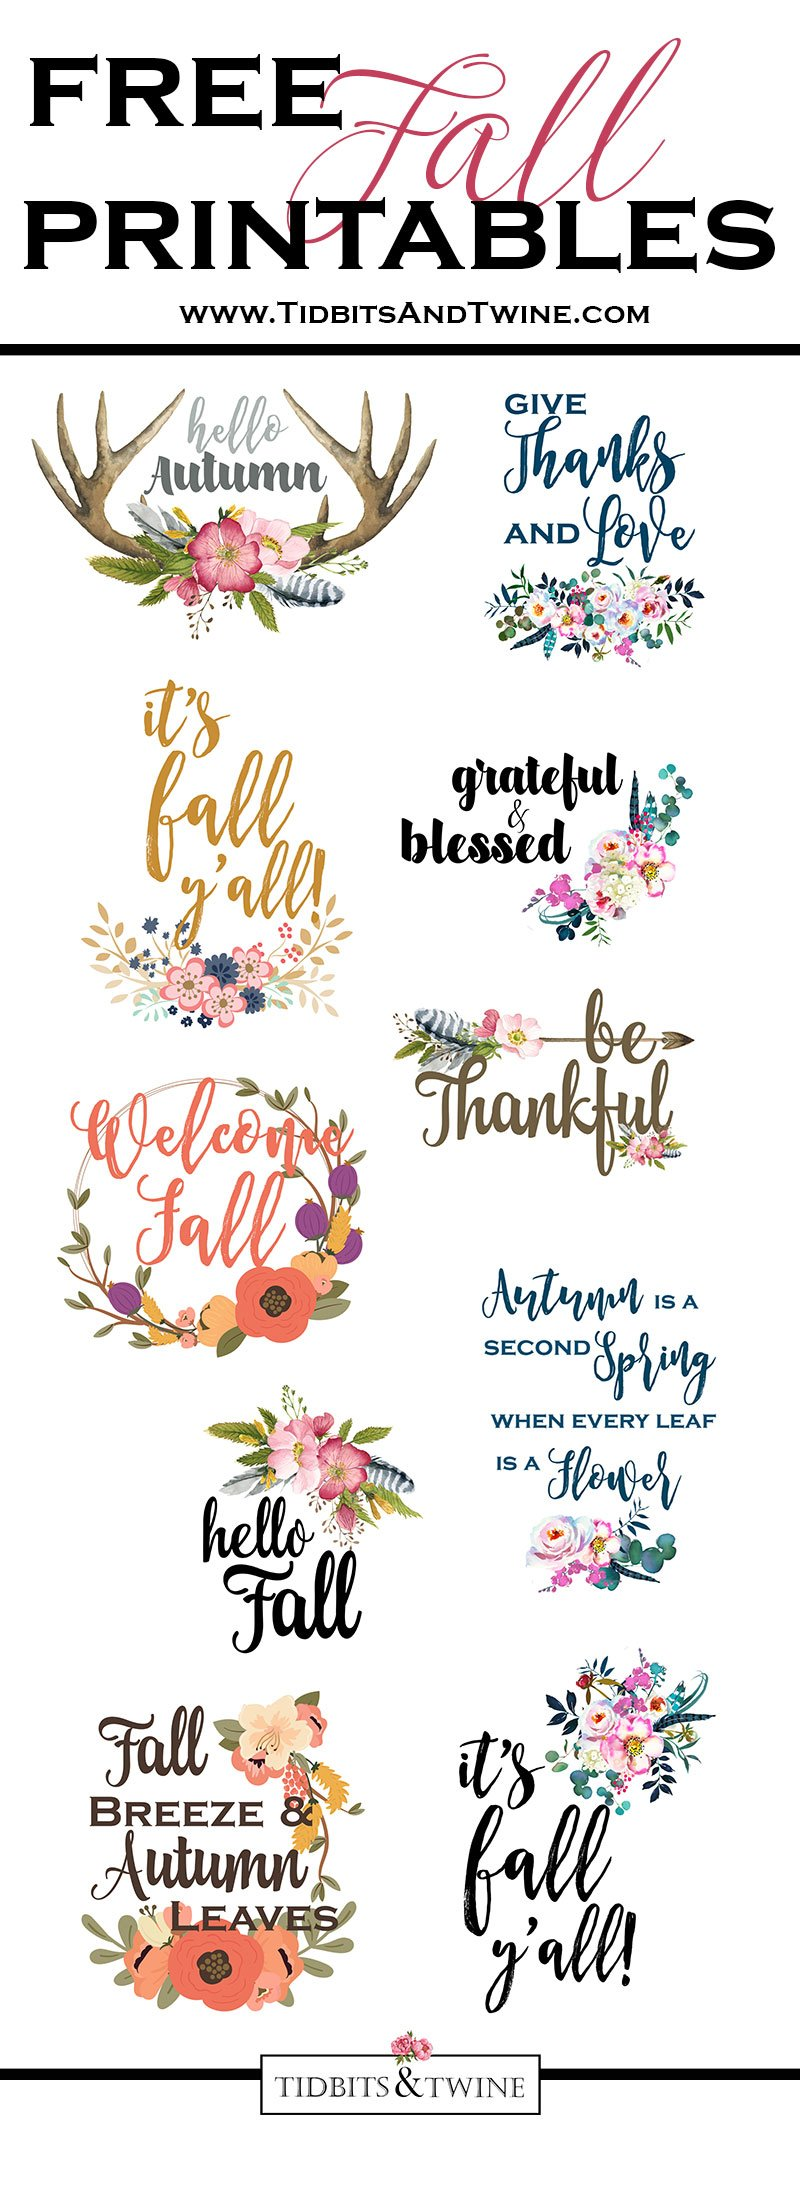 10 Free Fall Printables from Tidbits&Twine